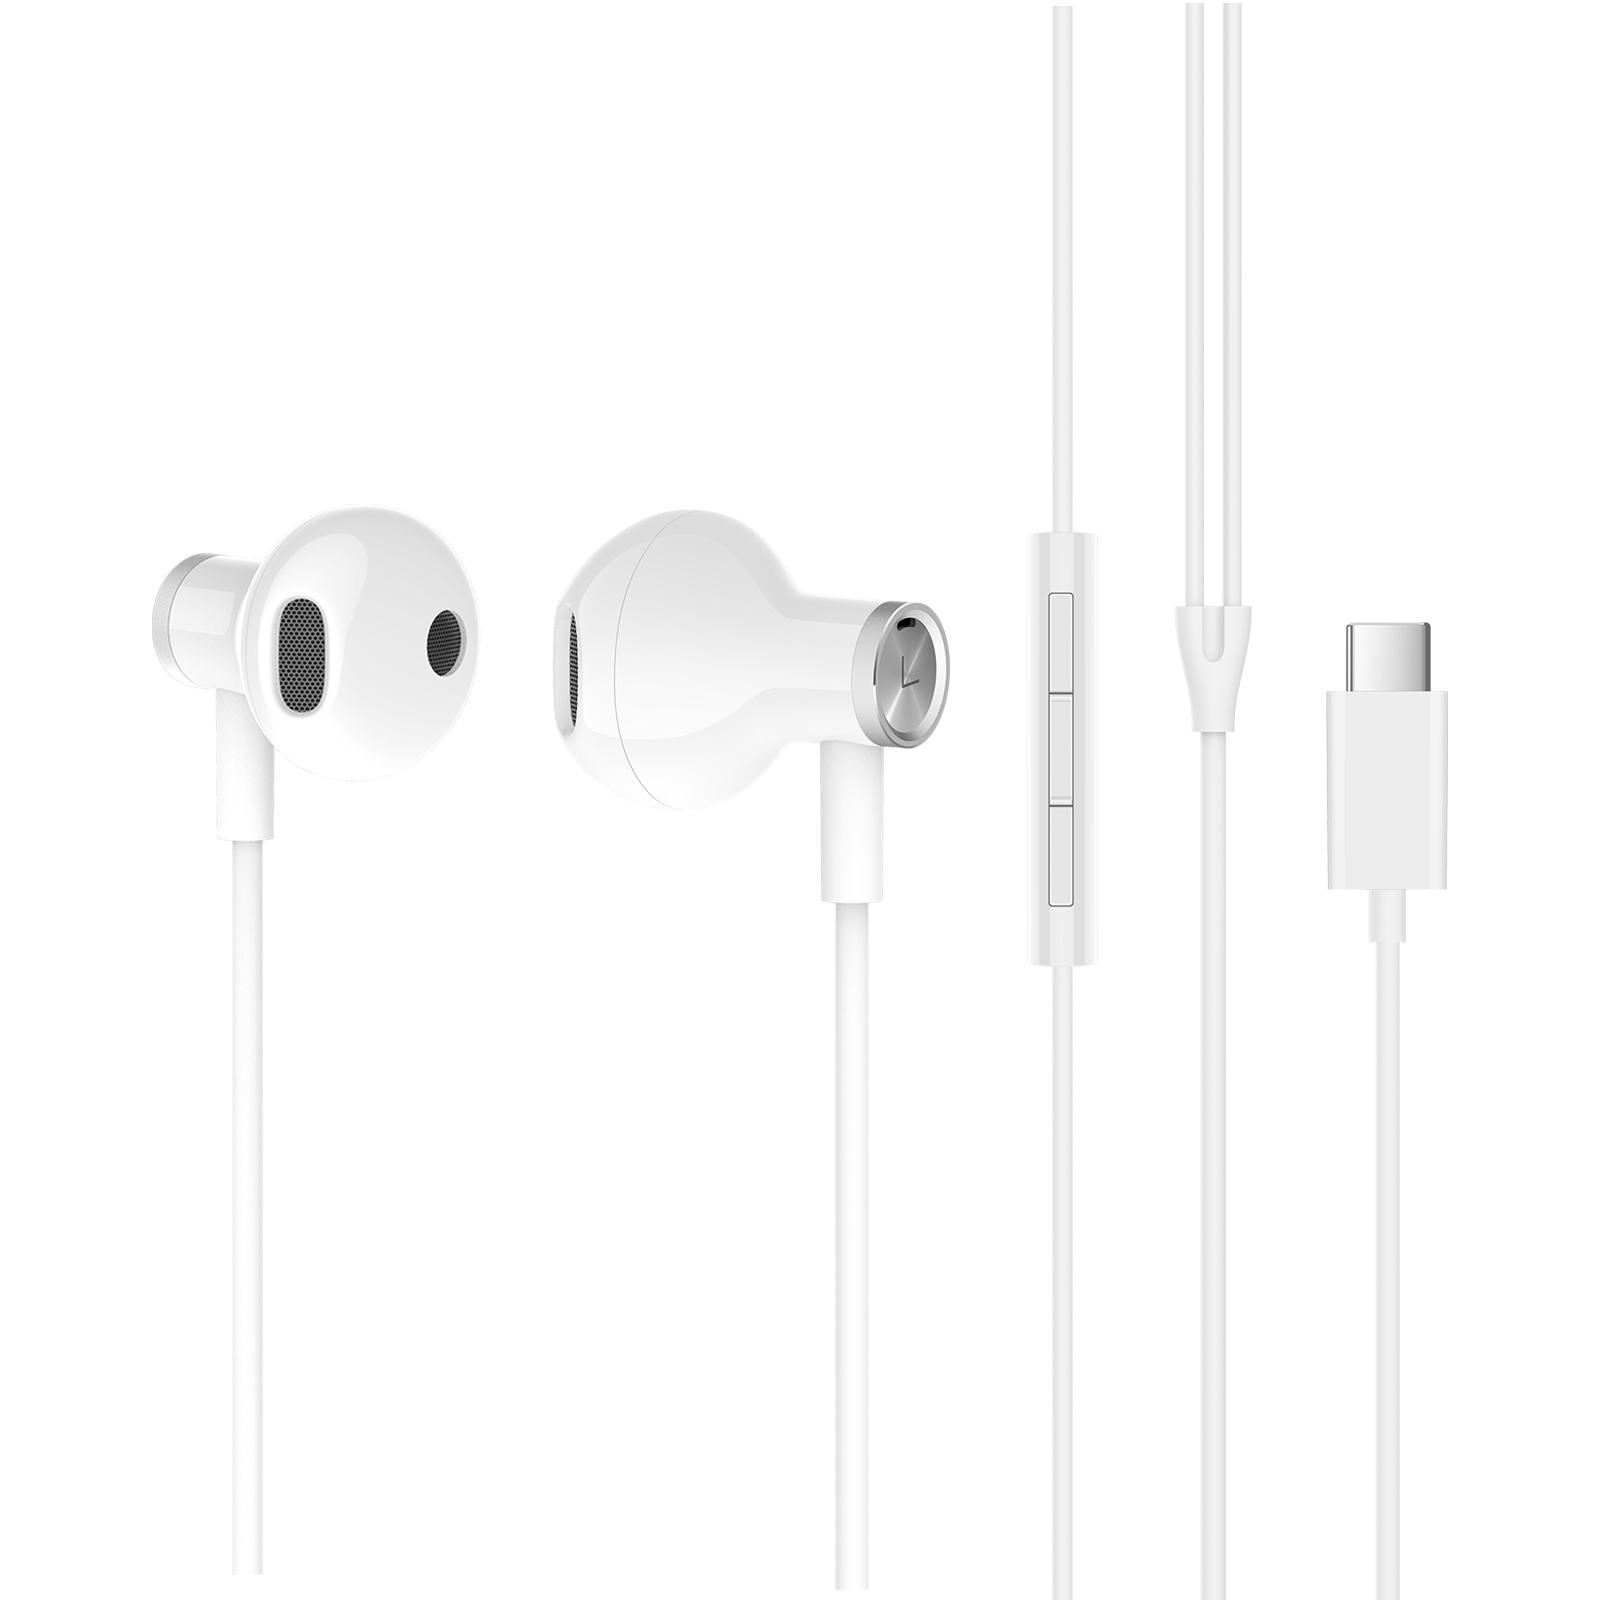 Наушники с микрофоном Xiaomi Mi Dual Driver Earphones (Type-C) (White) cxs l ball bushing bearing pneumatic compressed air cylinder type smc type dual rod basic type rubber bumper sanmin